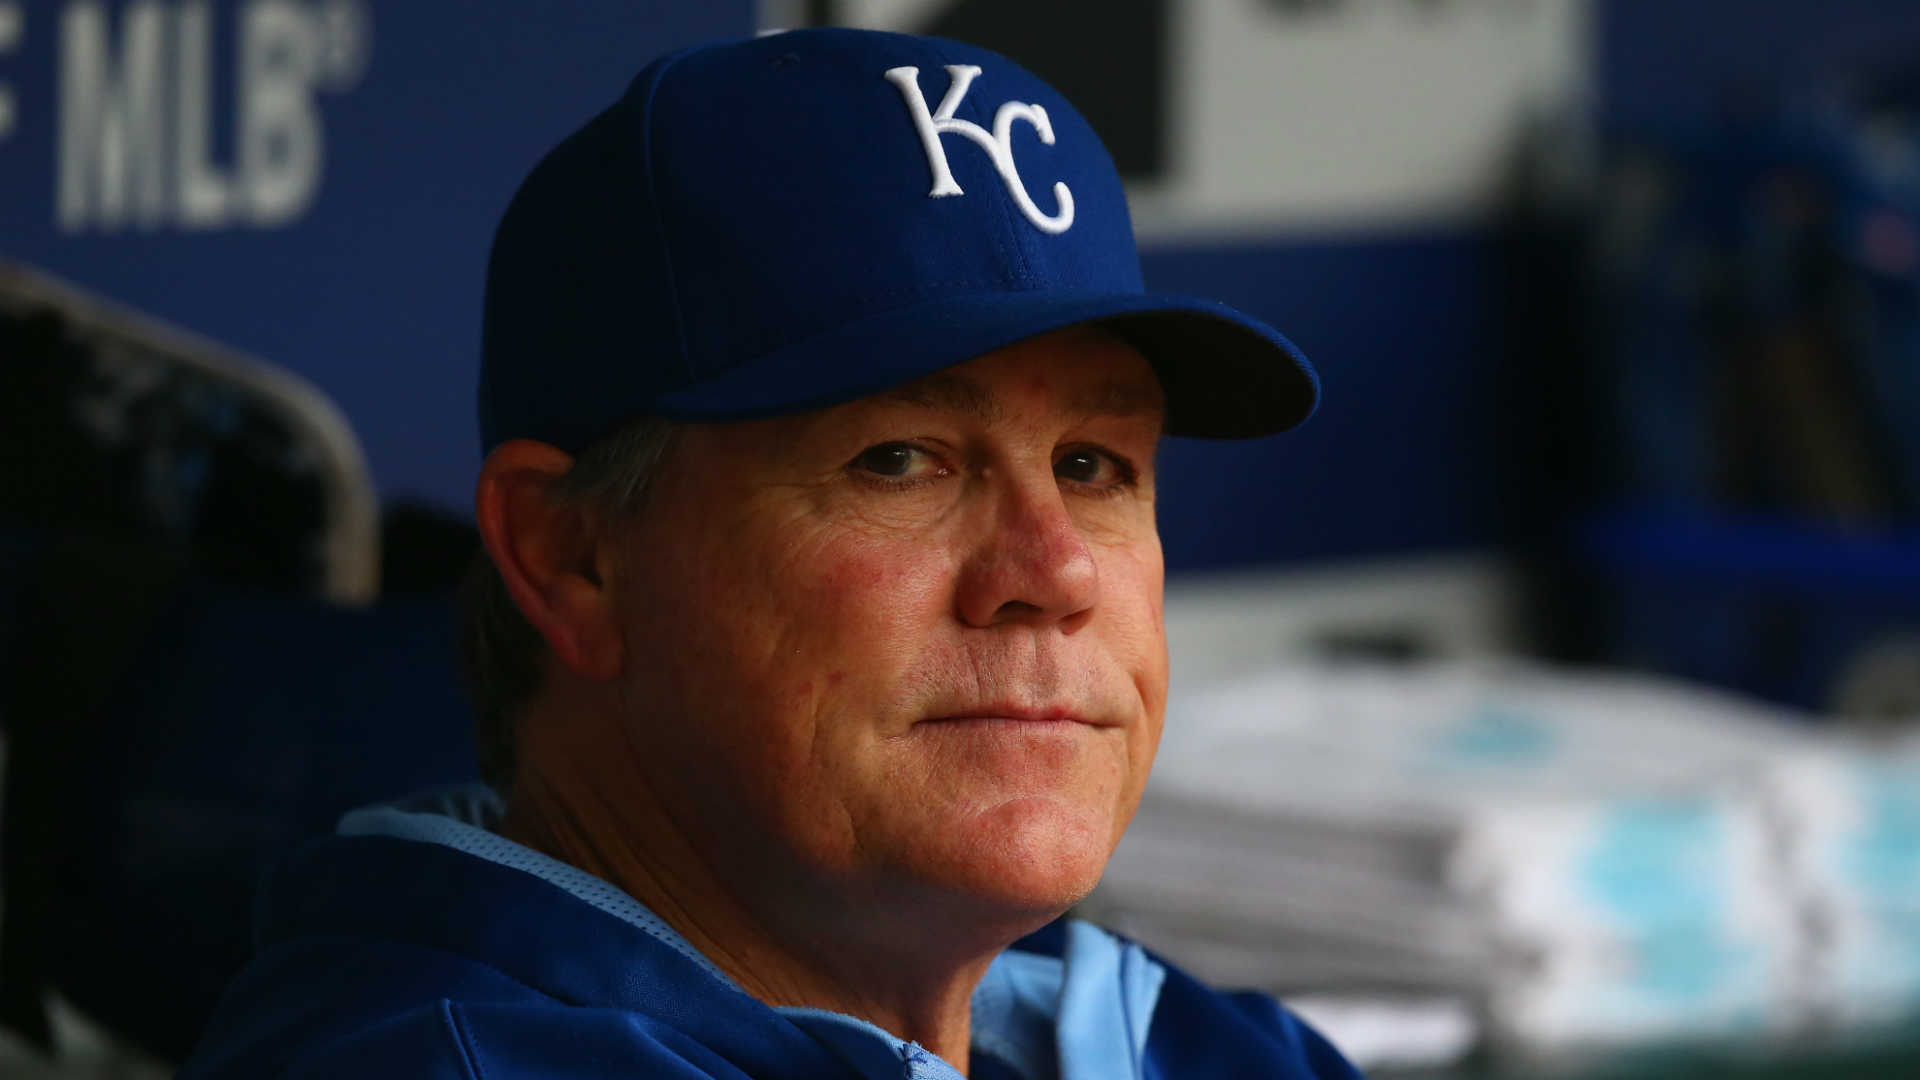 Royals manager Ned Yost